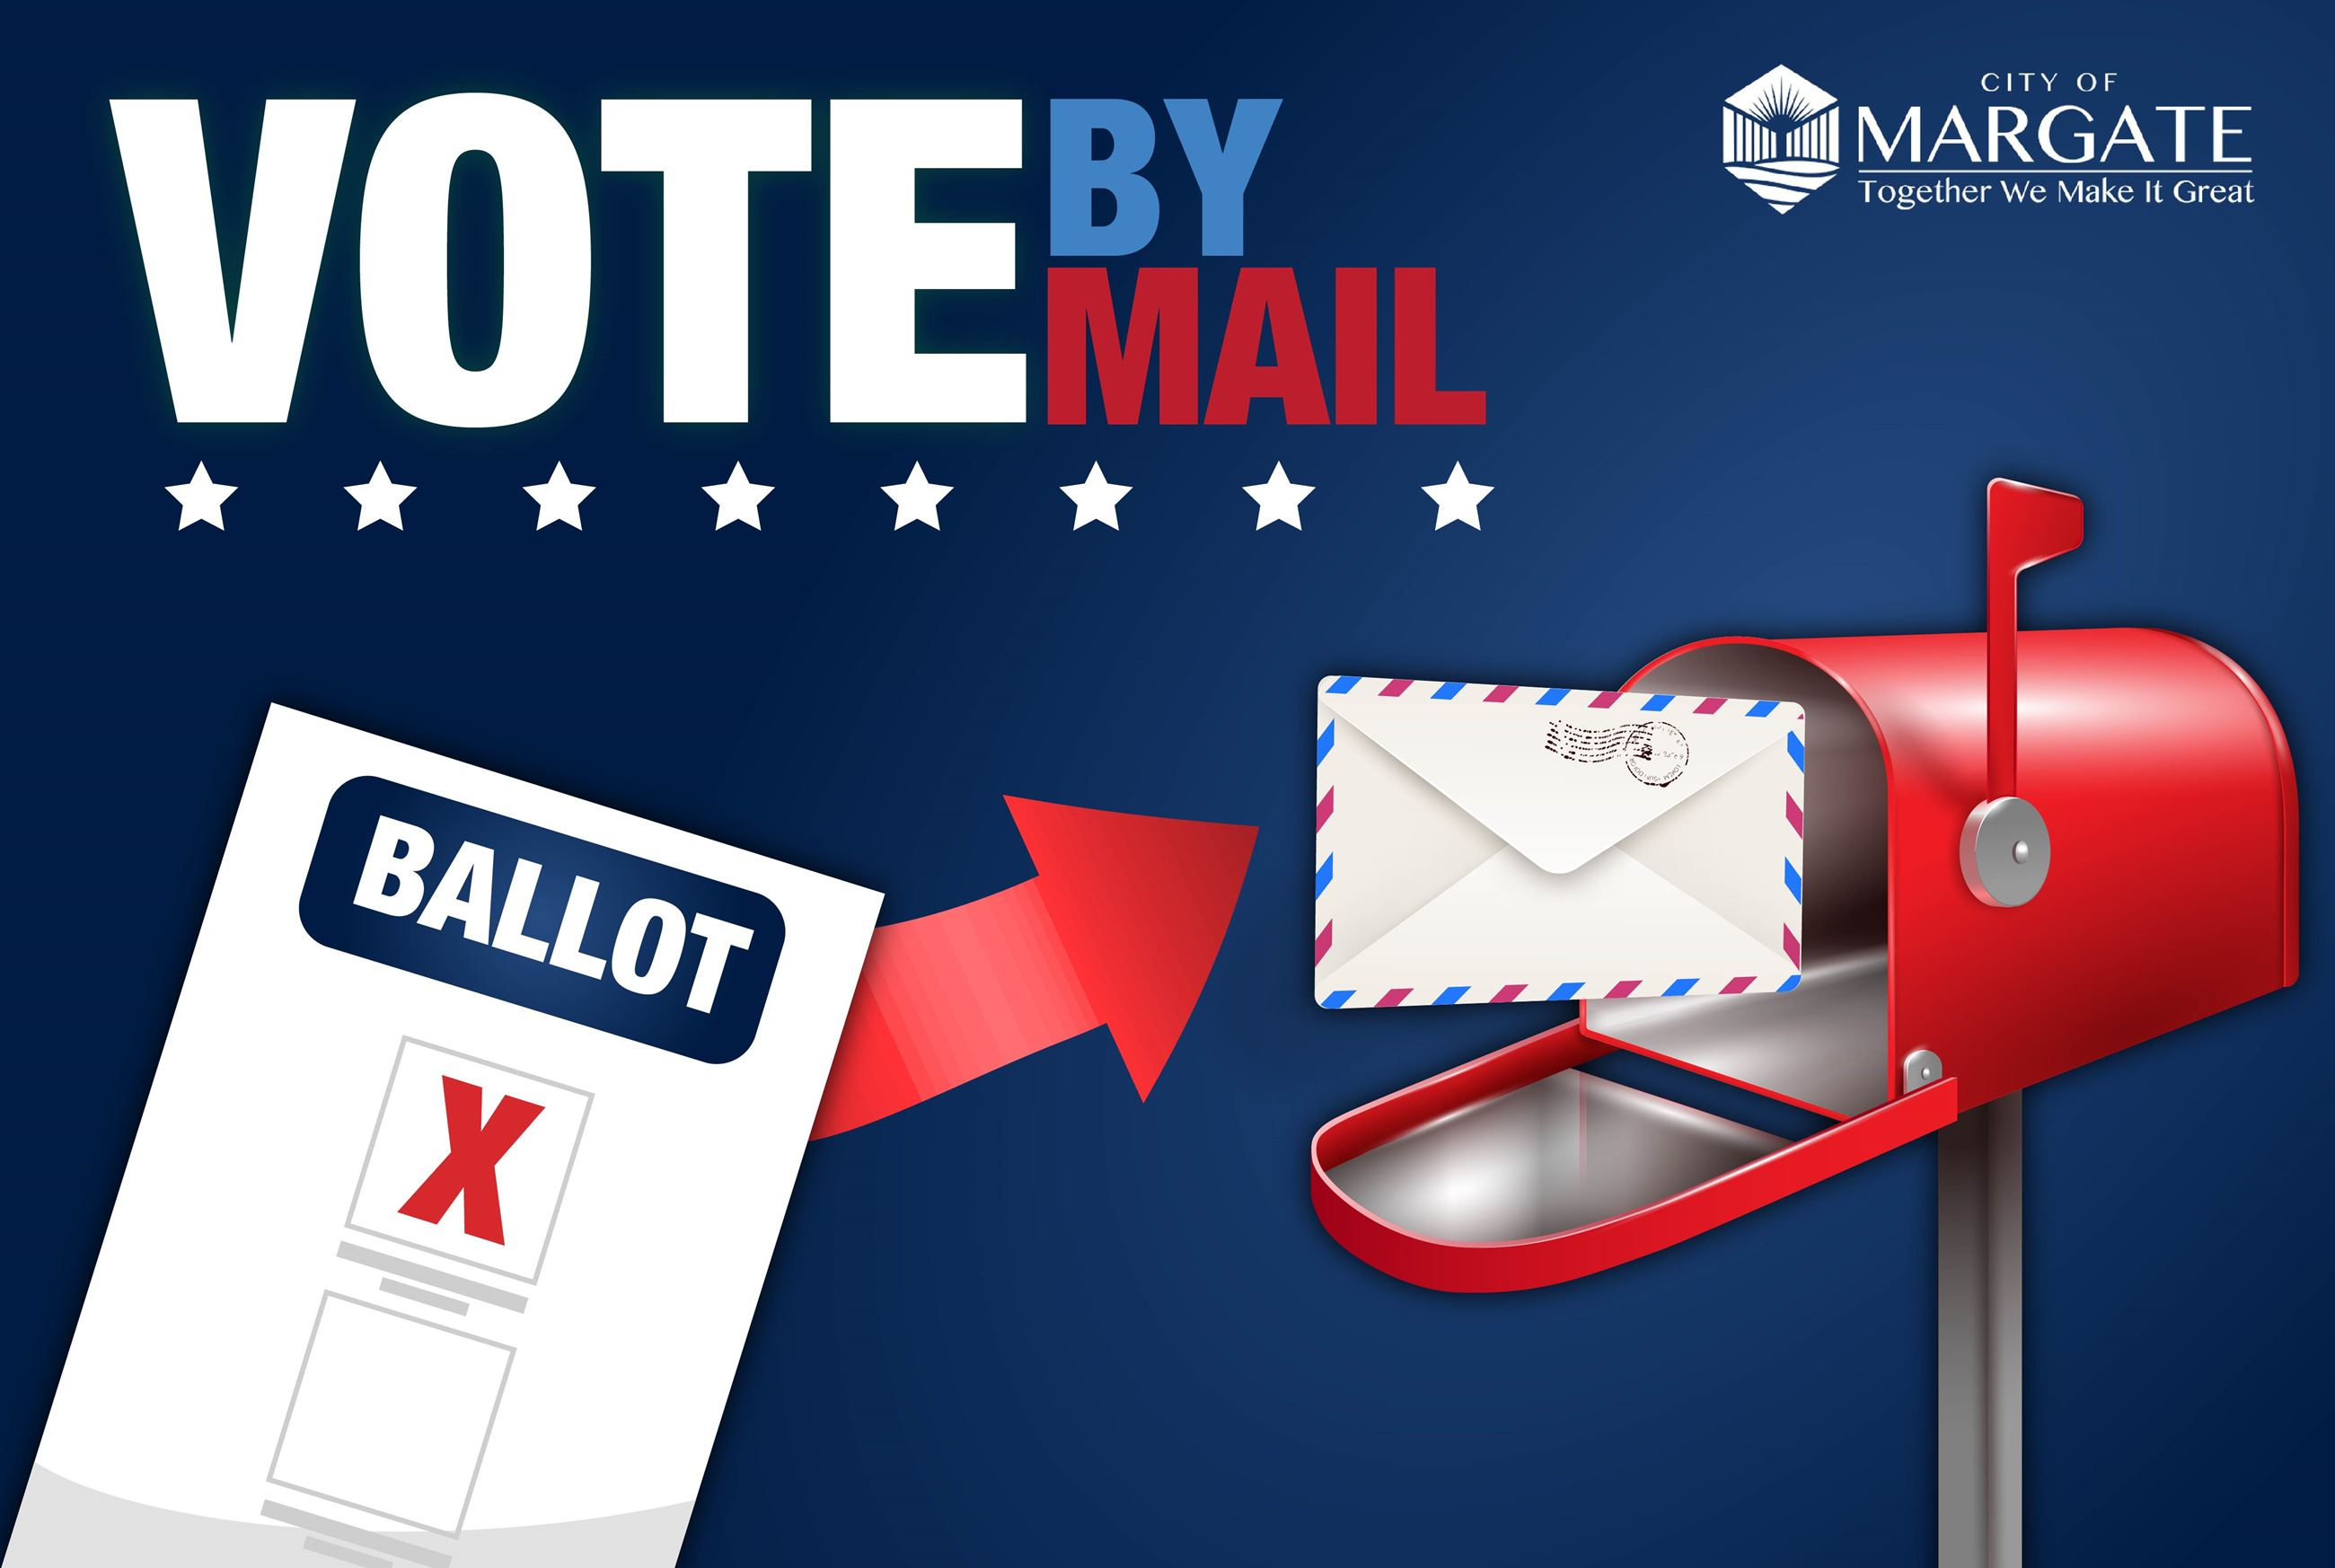 Vote By Mail Opens in new window